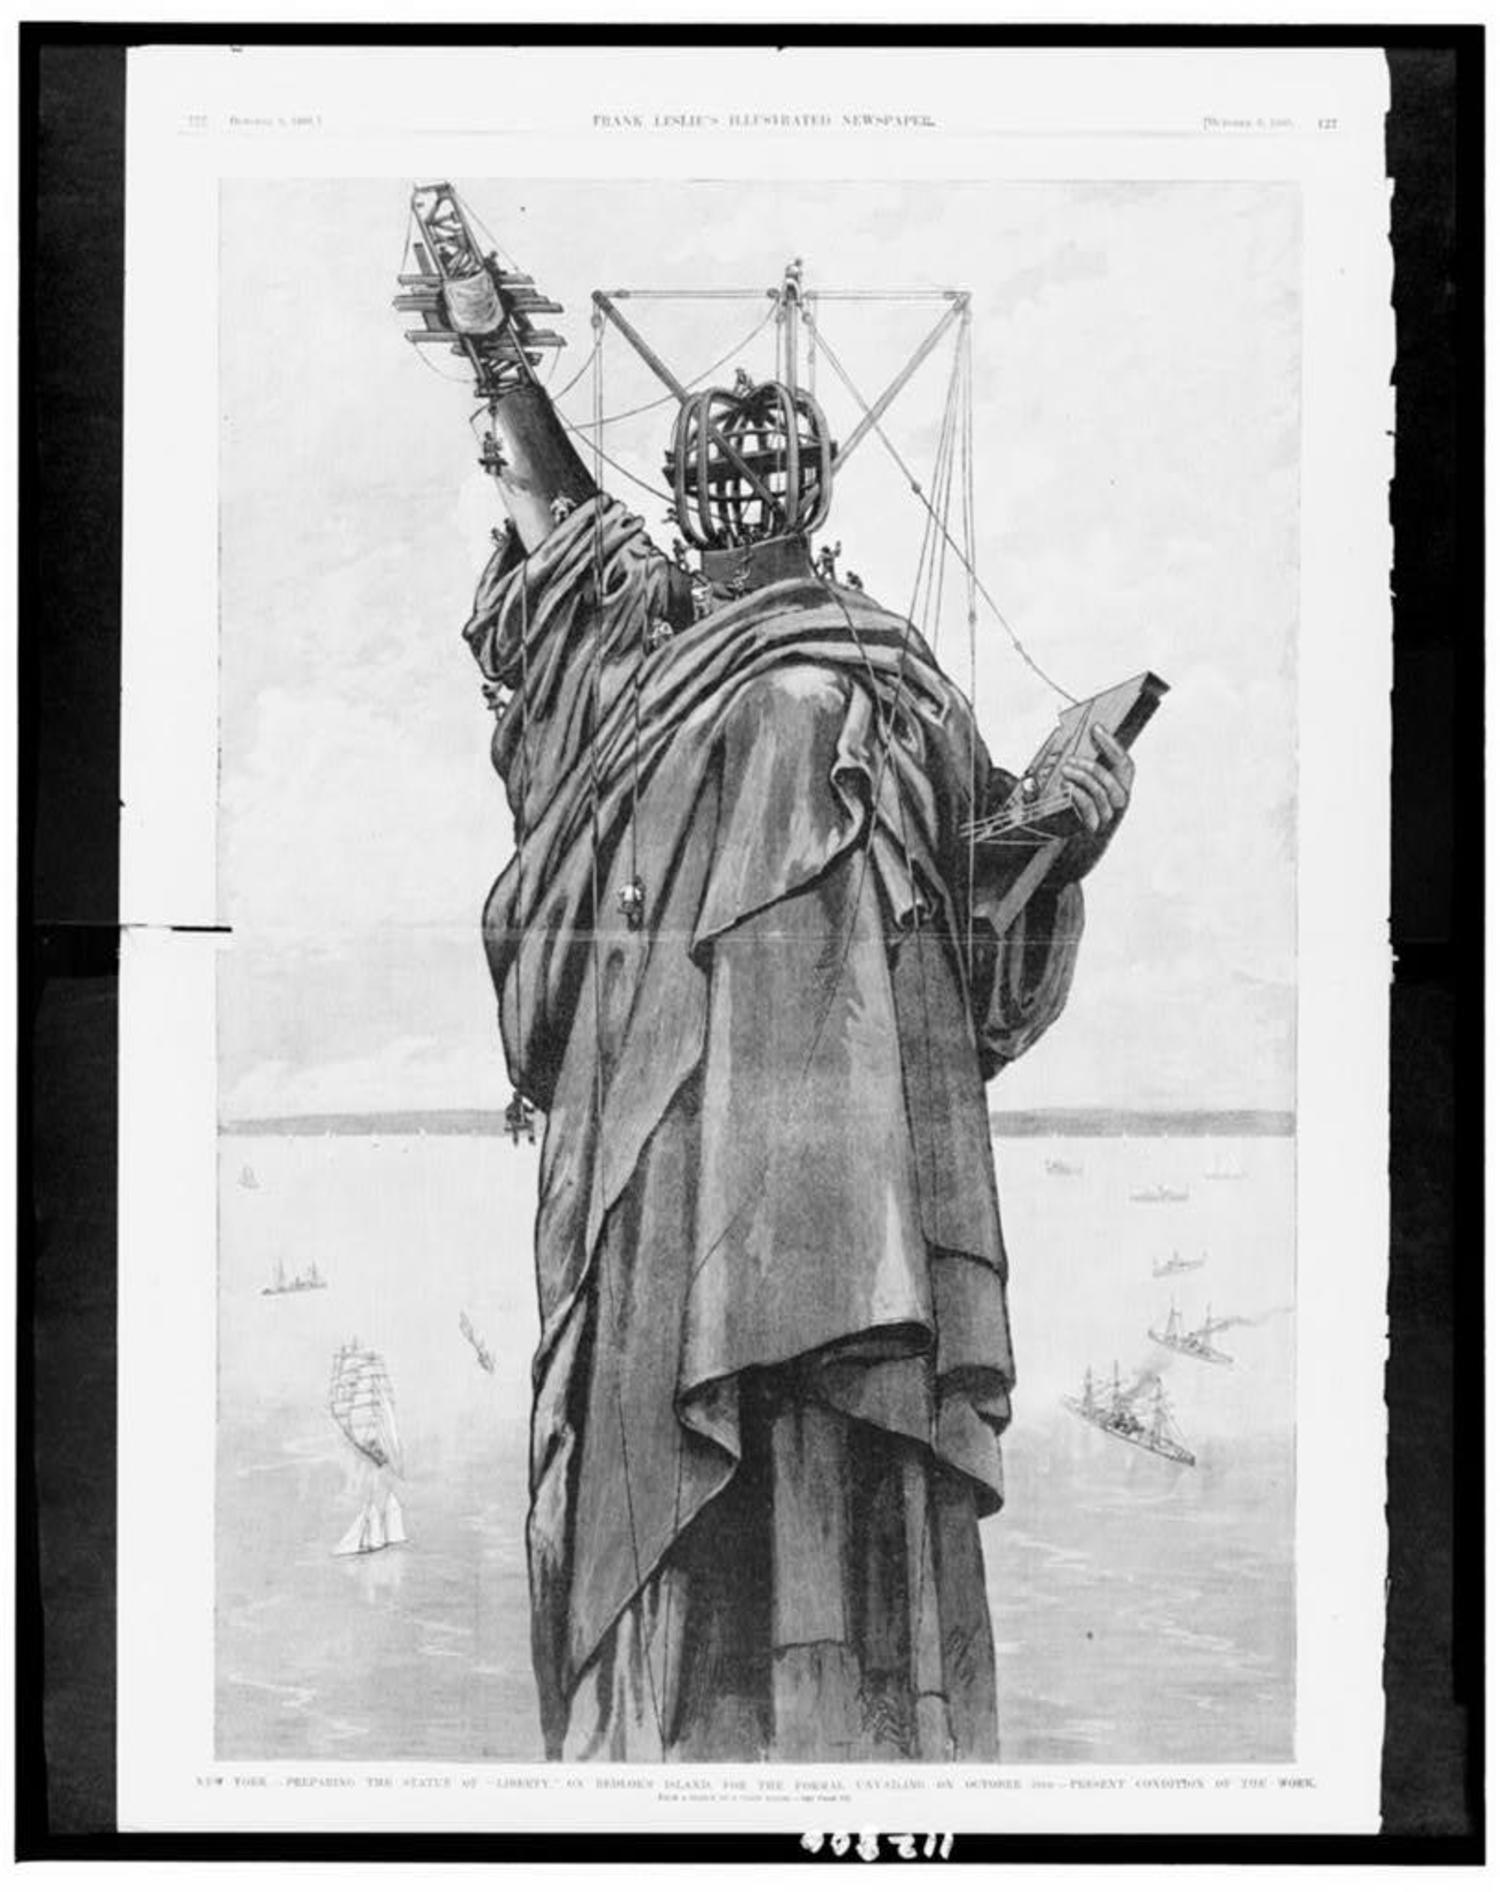 """Preparing the Statue of """"liberty"""" on Bedloe's Island, for the formal unvailing [sic] on October 28th - Present condition of the work / from a sketch by a staff artist. 1886."""